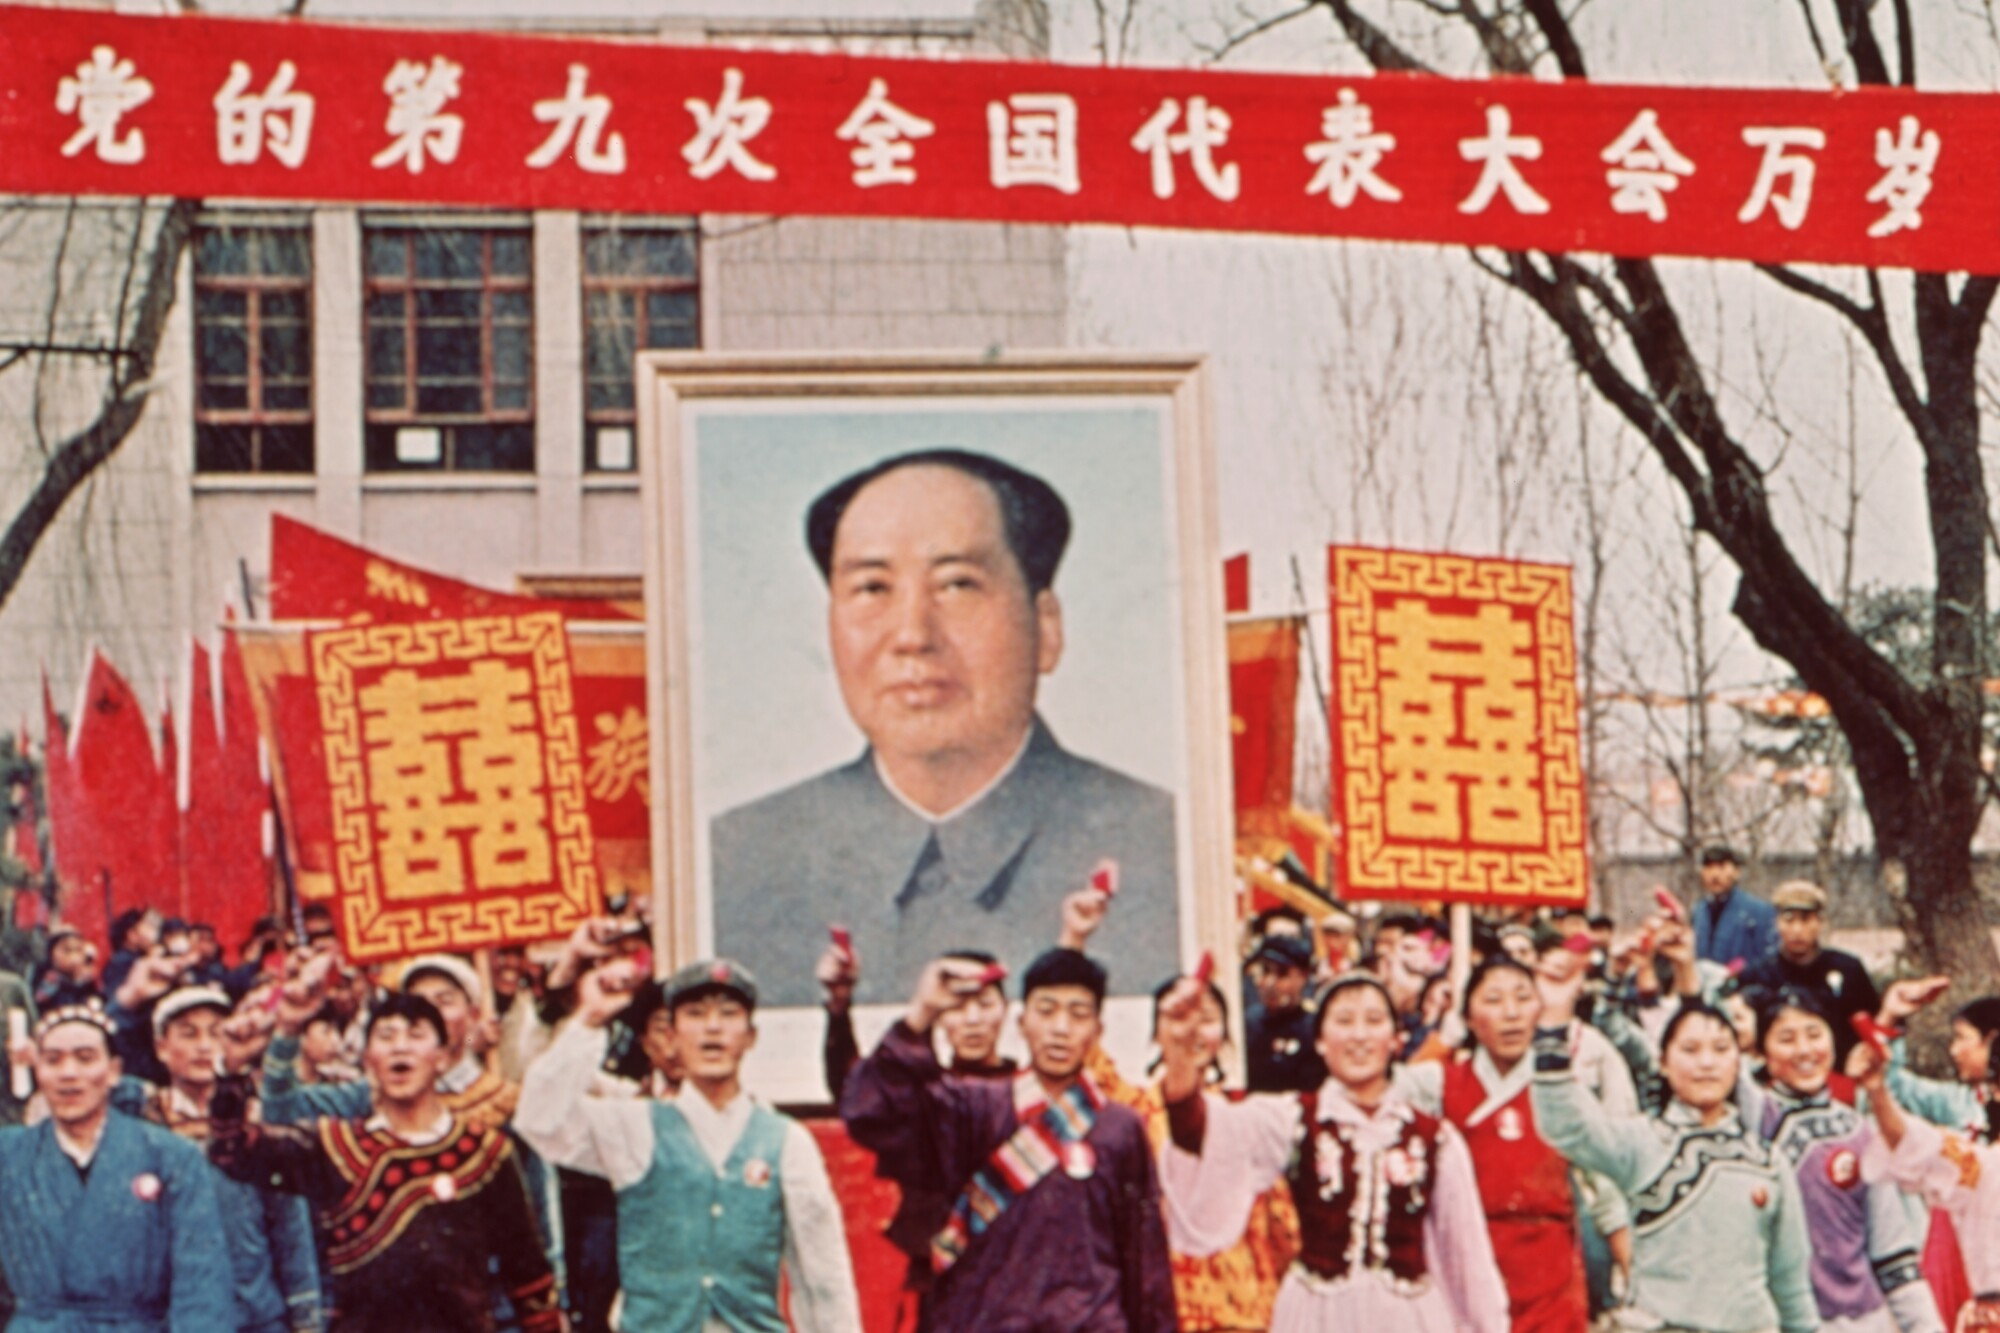 People march  carrying a large poster of Chairman Mao Zedong during the Cultural Revolution in China in 1968.